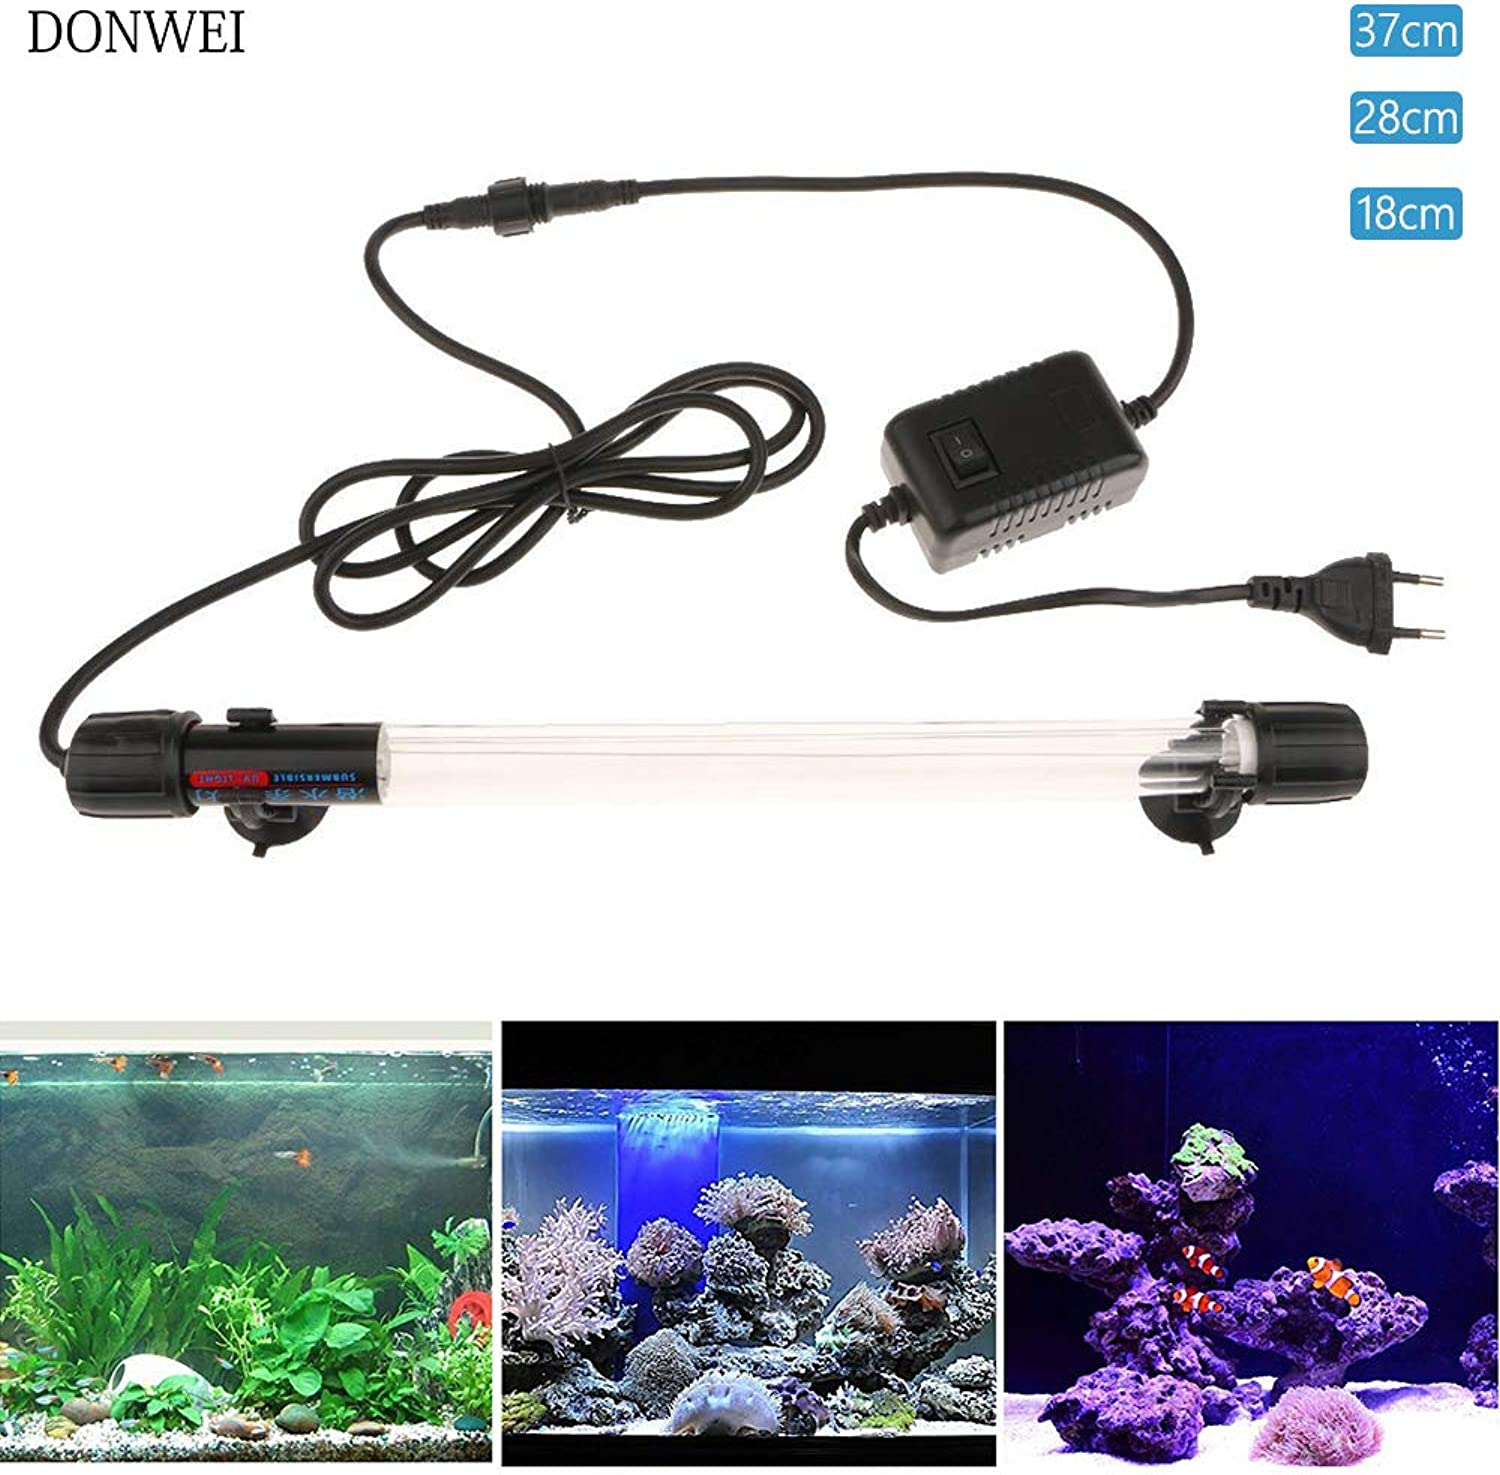 Led Lights Submersible Uv Light Sterilizer 6W 10W 15W Sterilizing Lamp for Aquarium Fish Tank Pond Water Disinfection Purify Killing Light - (Emitting color  190Mm 6W, Wattage  Us)